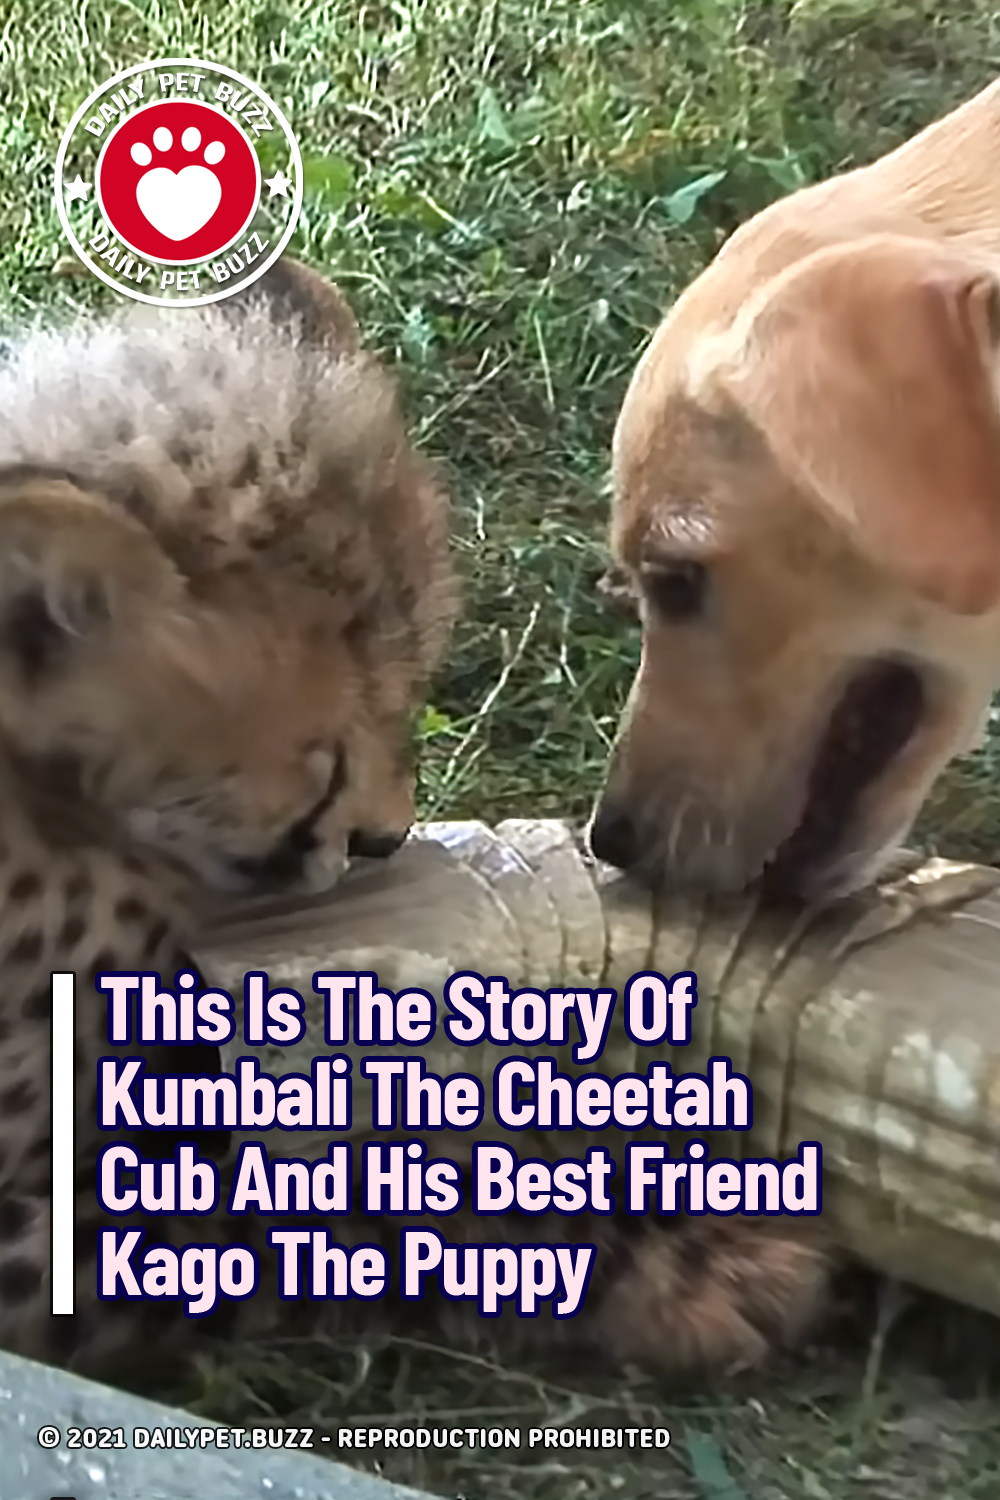 This Is The Story Of Kumbali The Cheetah Cub And His Best Friend Kago The Puppy